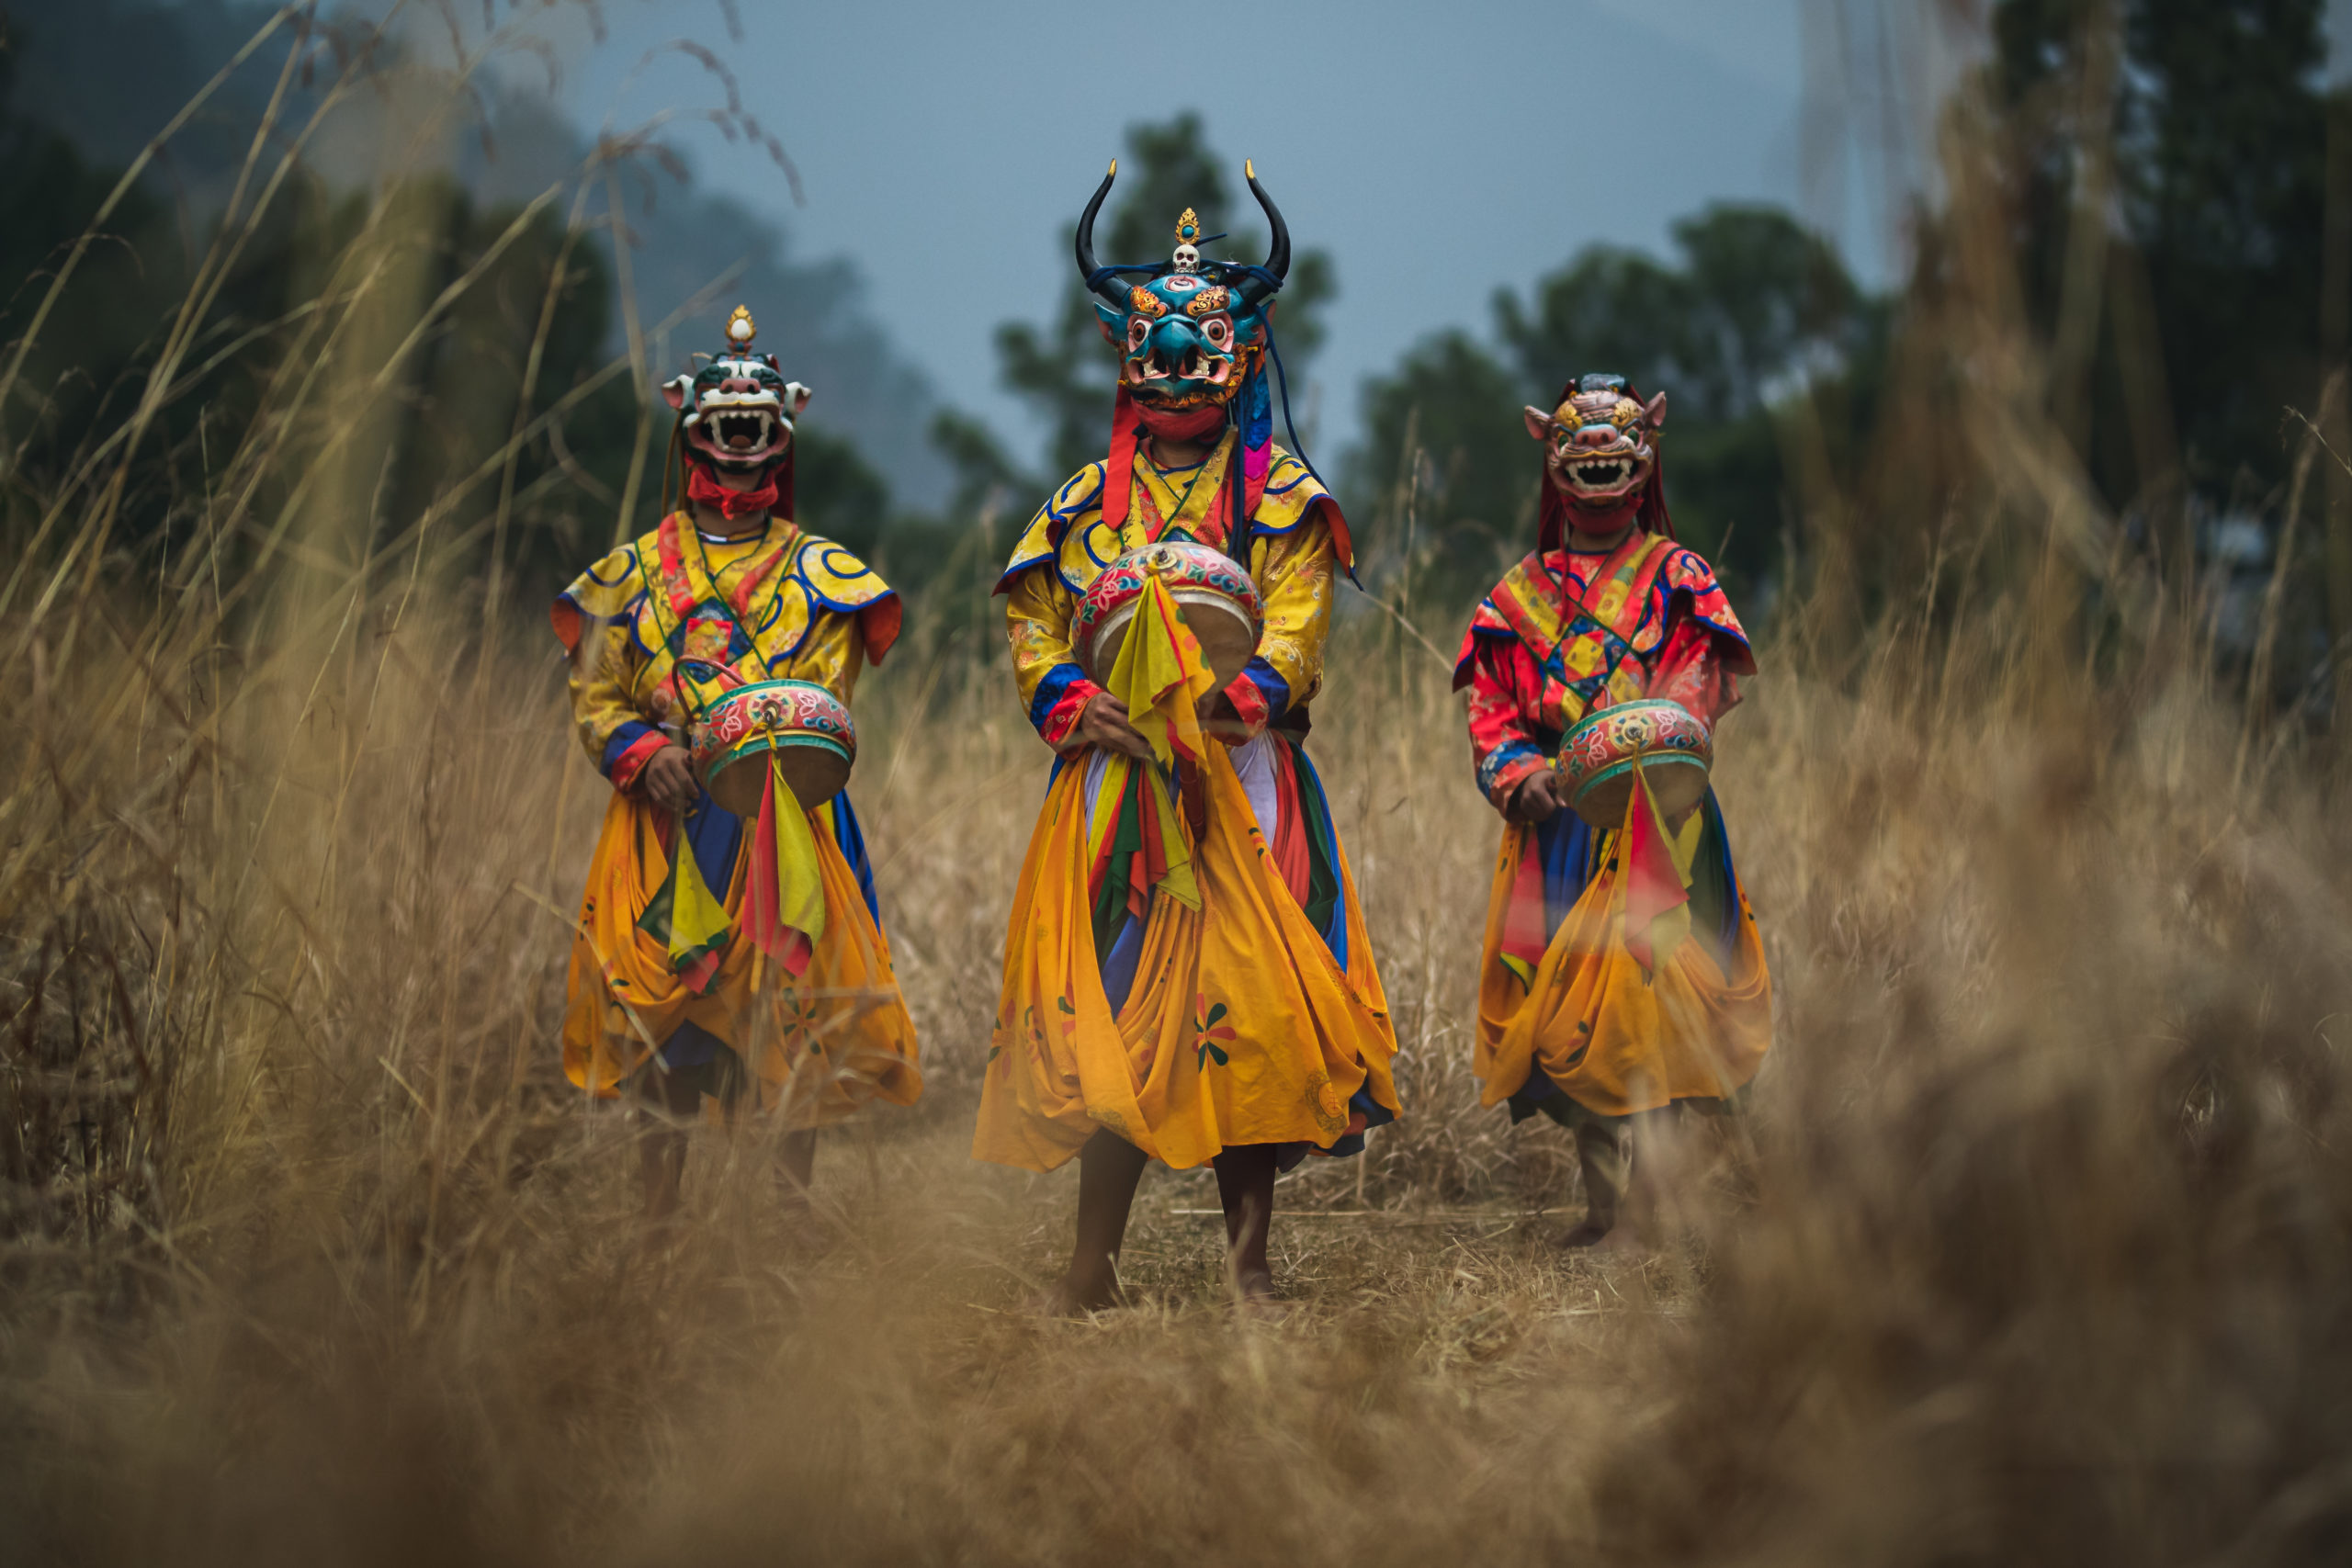 Photography of Bhutan's traditional masked dancers in Punakha